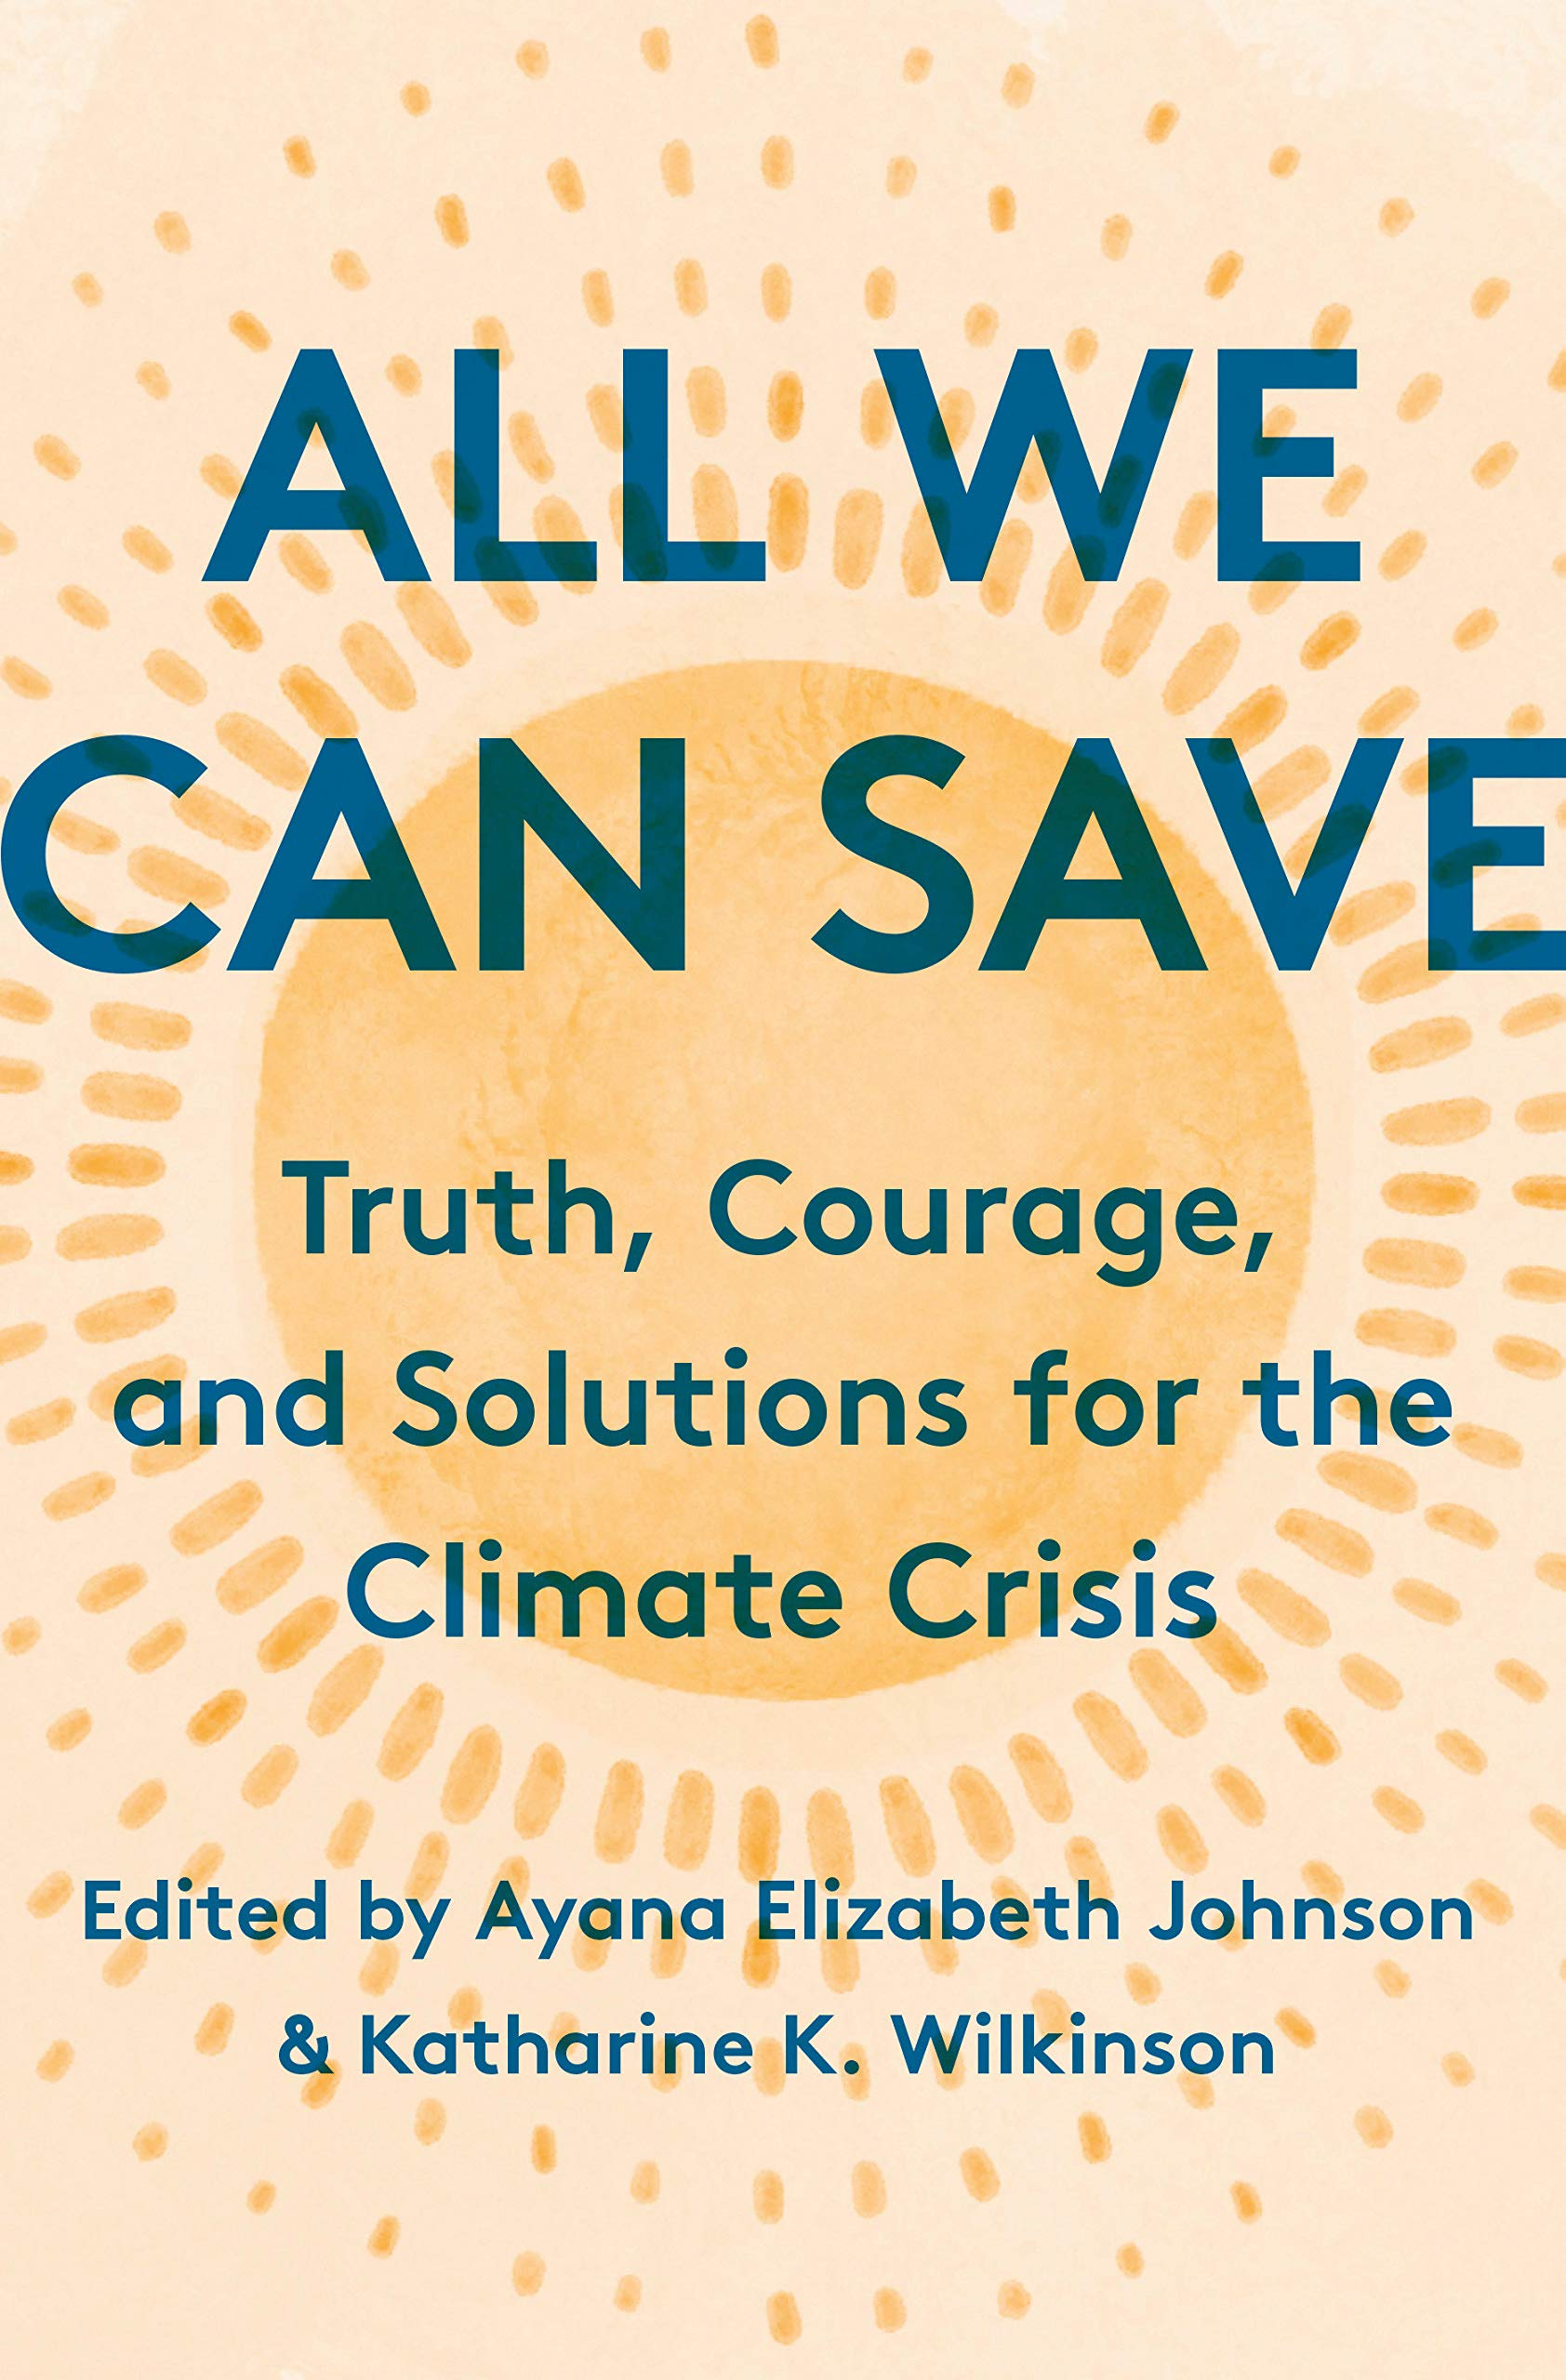 All We Can Save Ayana Elizabeth Johnson and Kathrine Wilkinson.